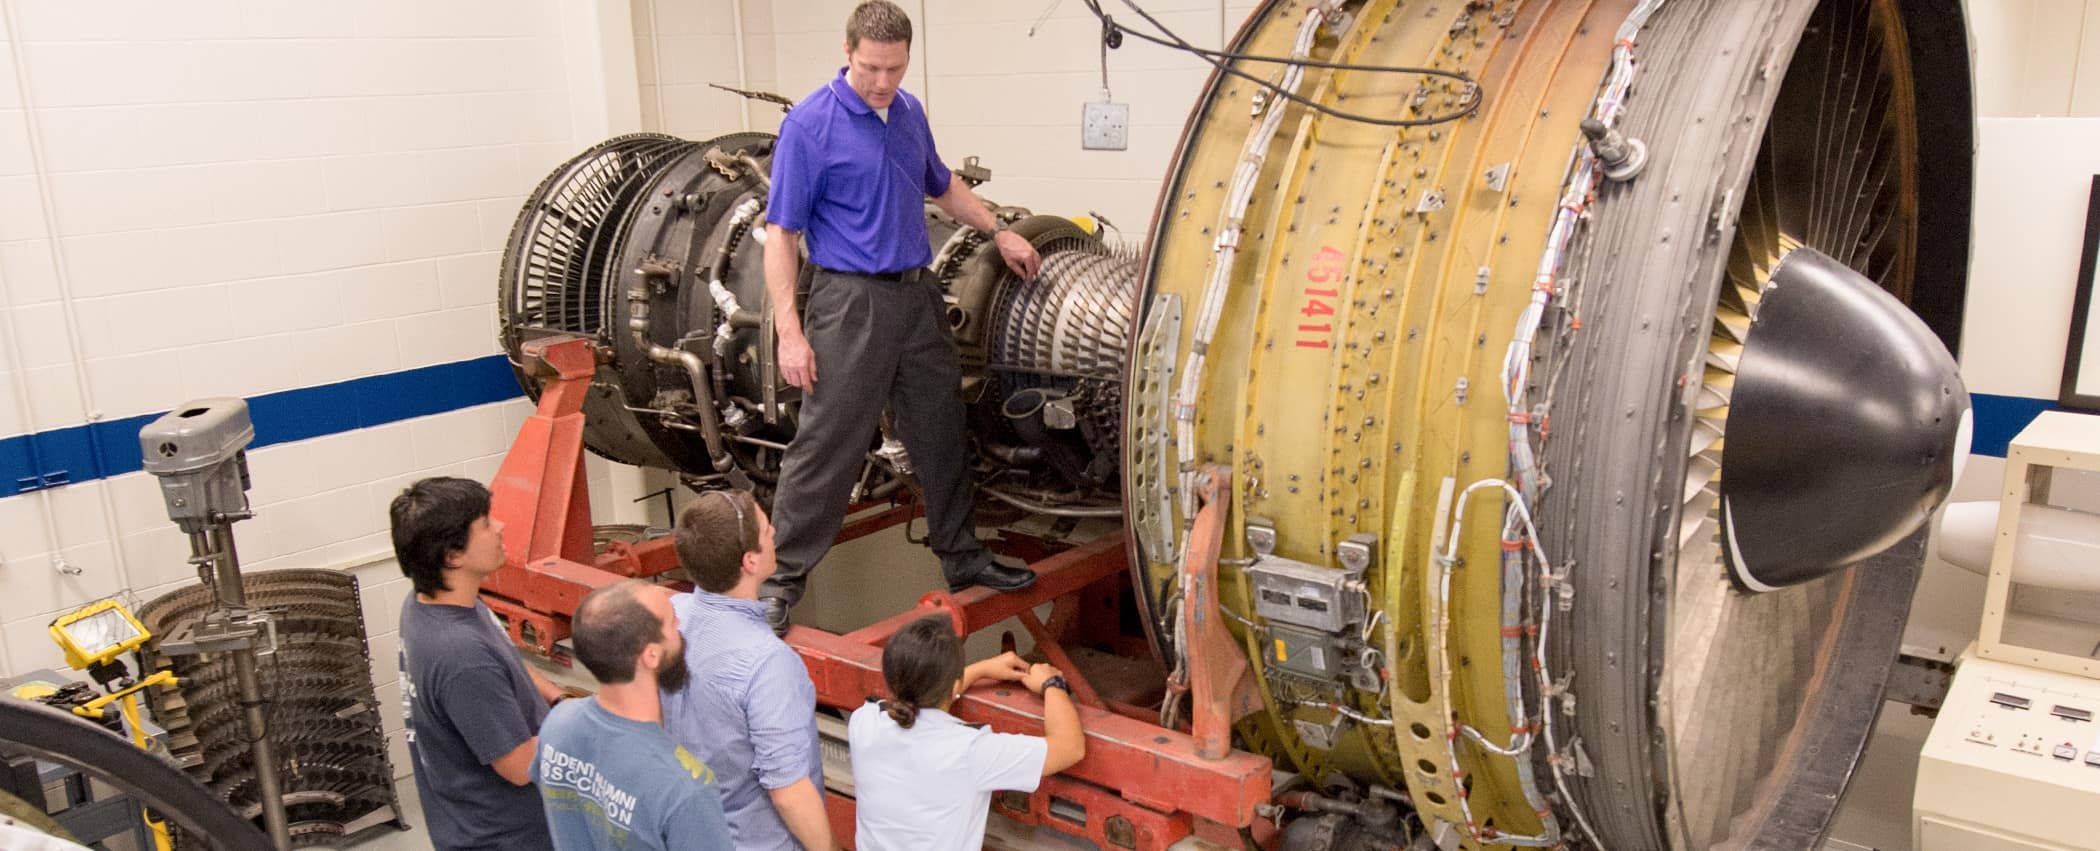 Bachelor of Science Degree in Aerospace Engineering | Embry